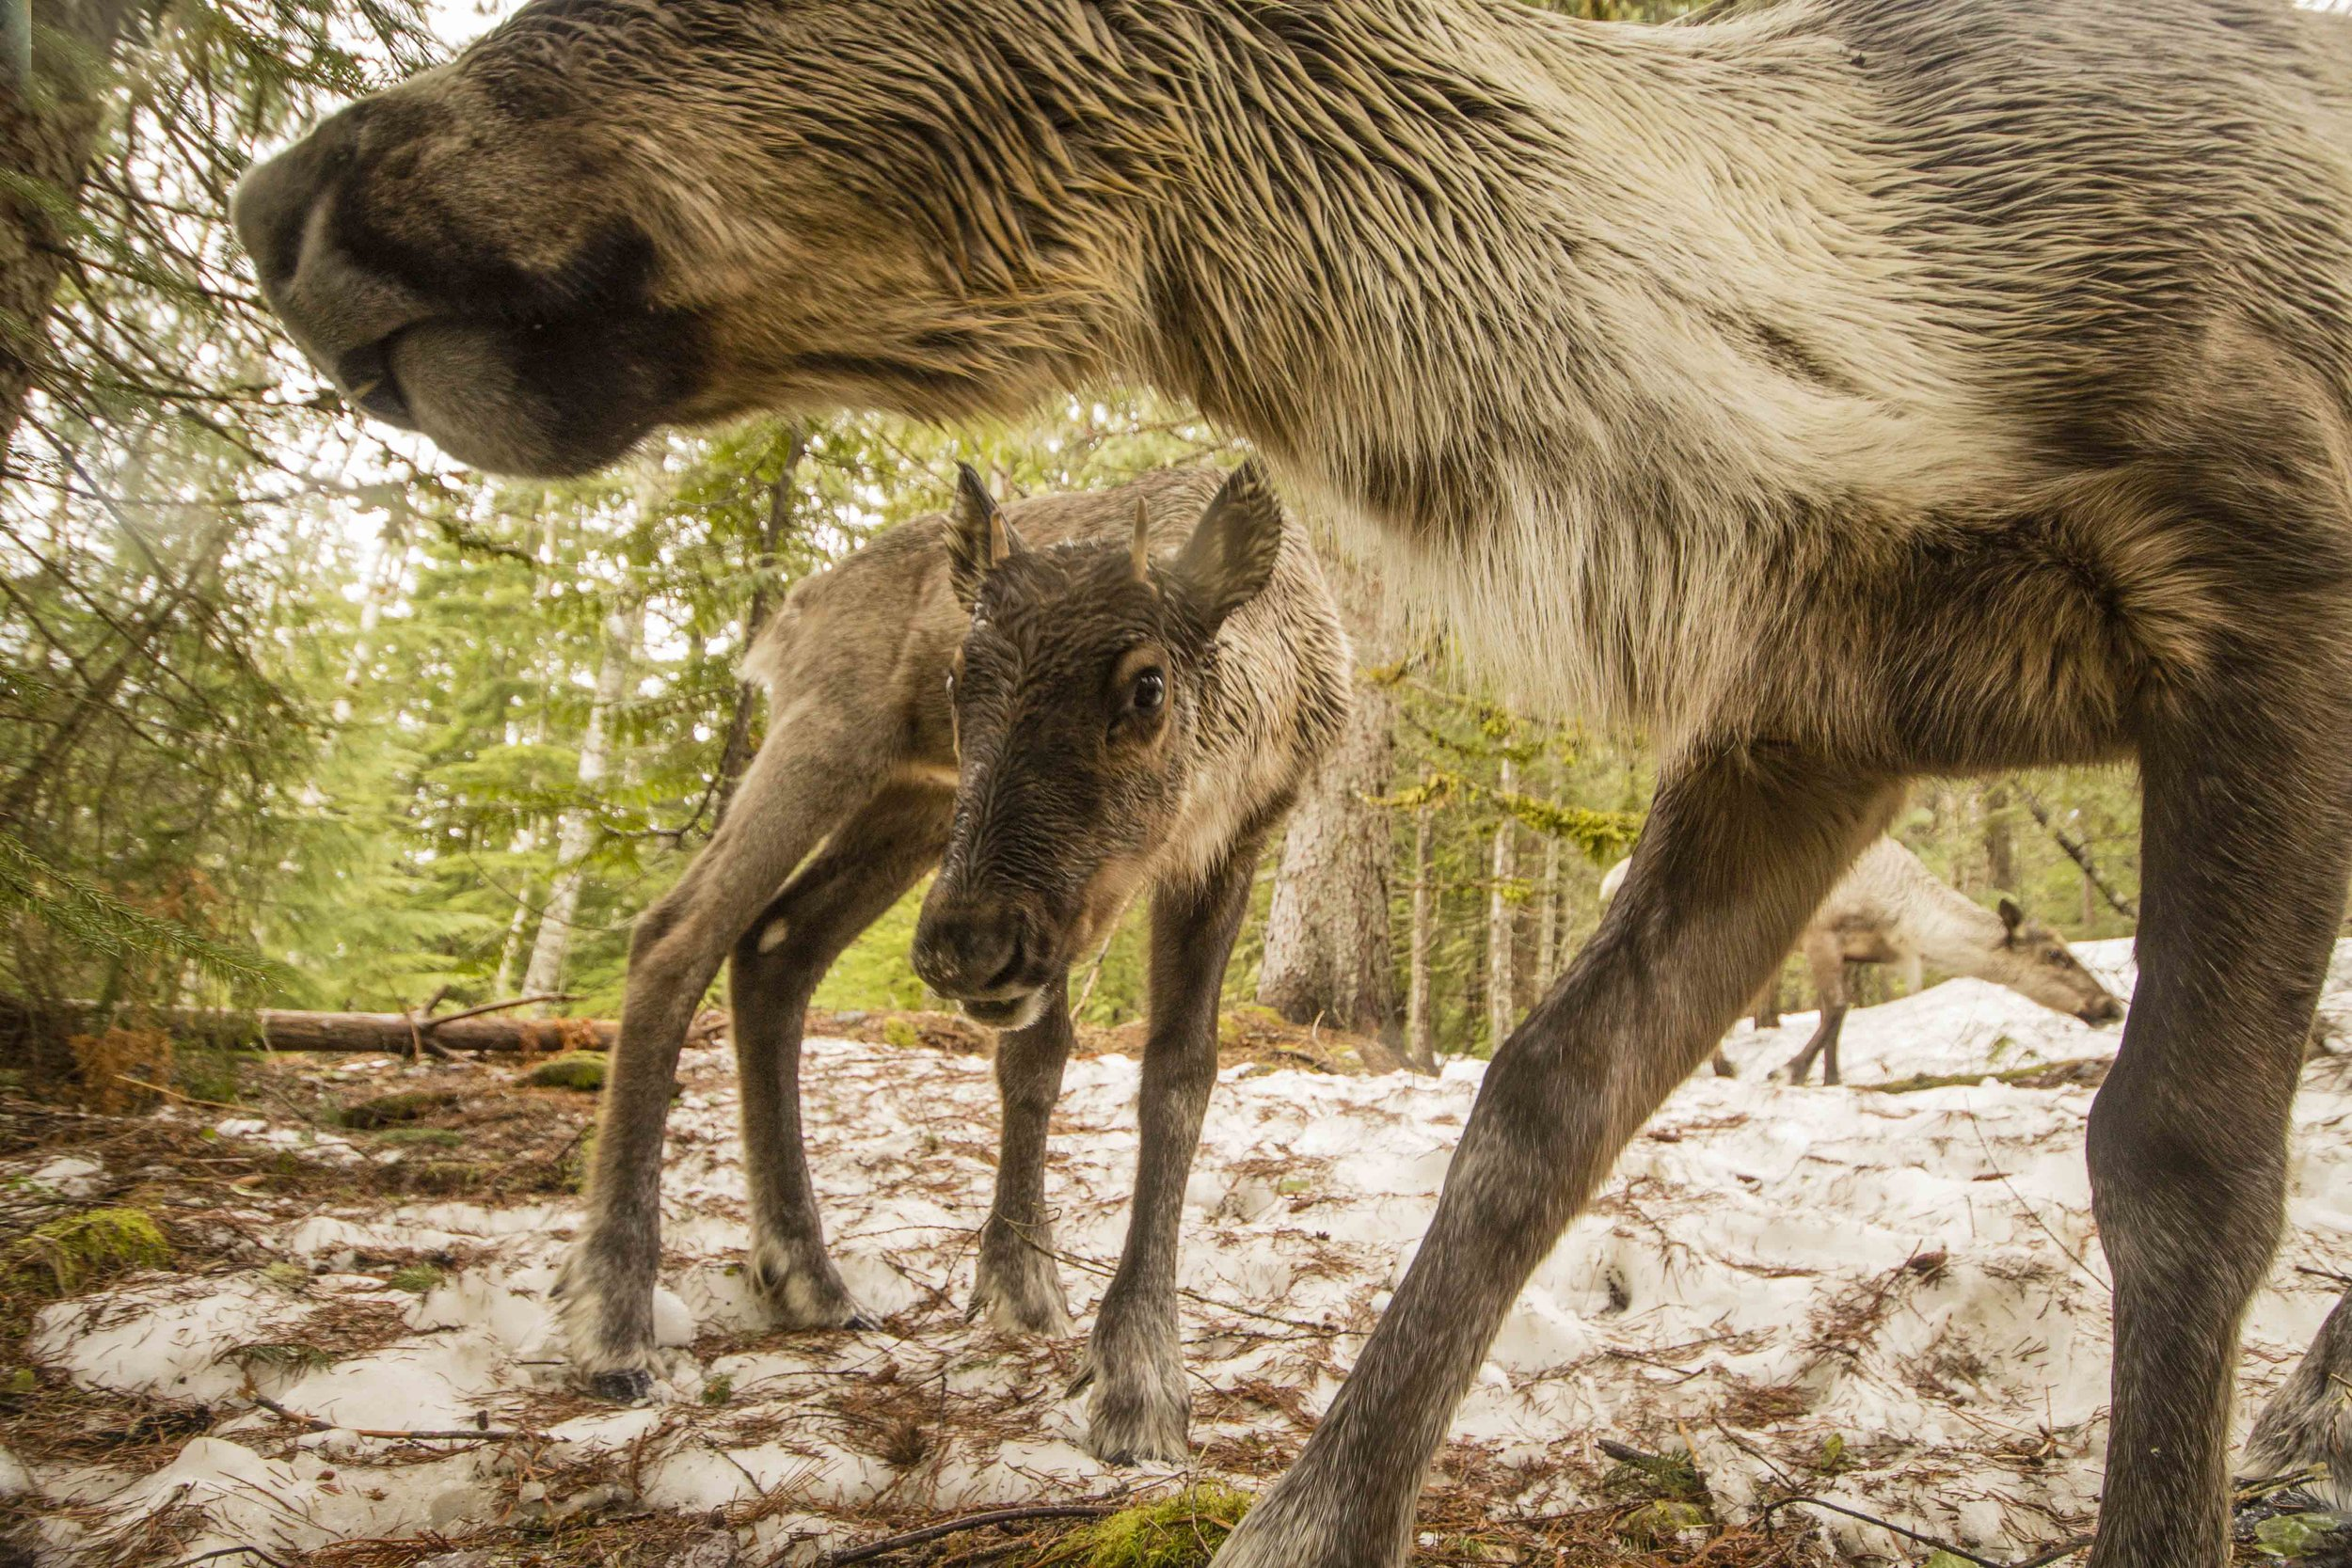 Speak Out for Mountain Caribou - The caribou need your help, your voice, right now. Let B.C. and Canada know you support caribou habitat protection and recovery efforts.Take Action: Y2Y Conservation Initiative →